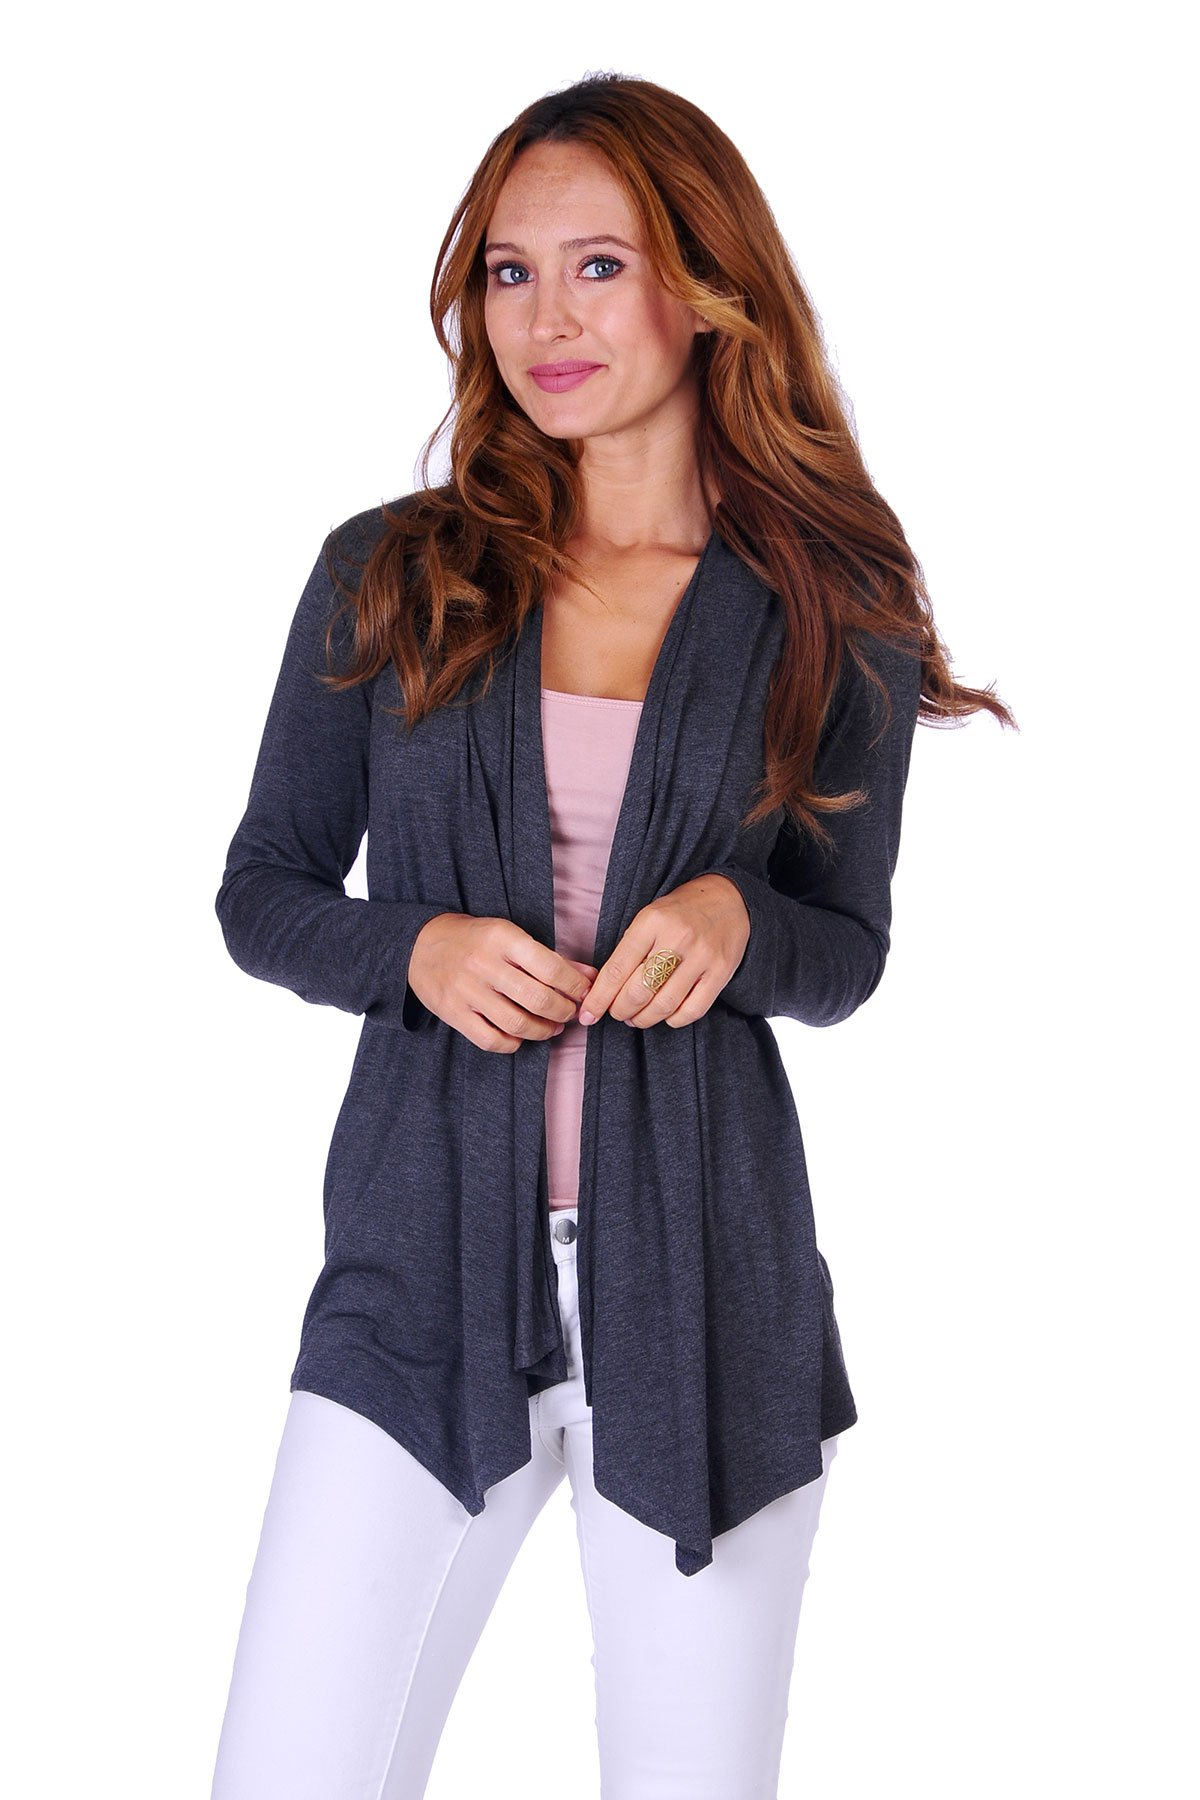 SR Women's Basic Long Sleeve Open Cardigan (Size: Small-5X), 1X, Charcoal